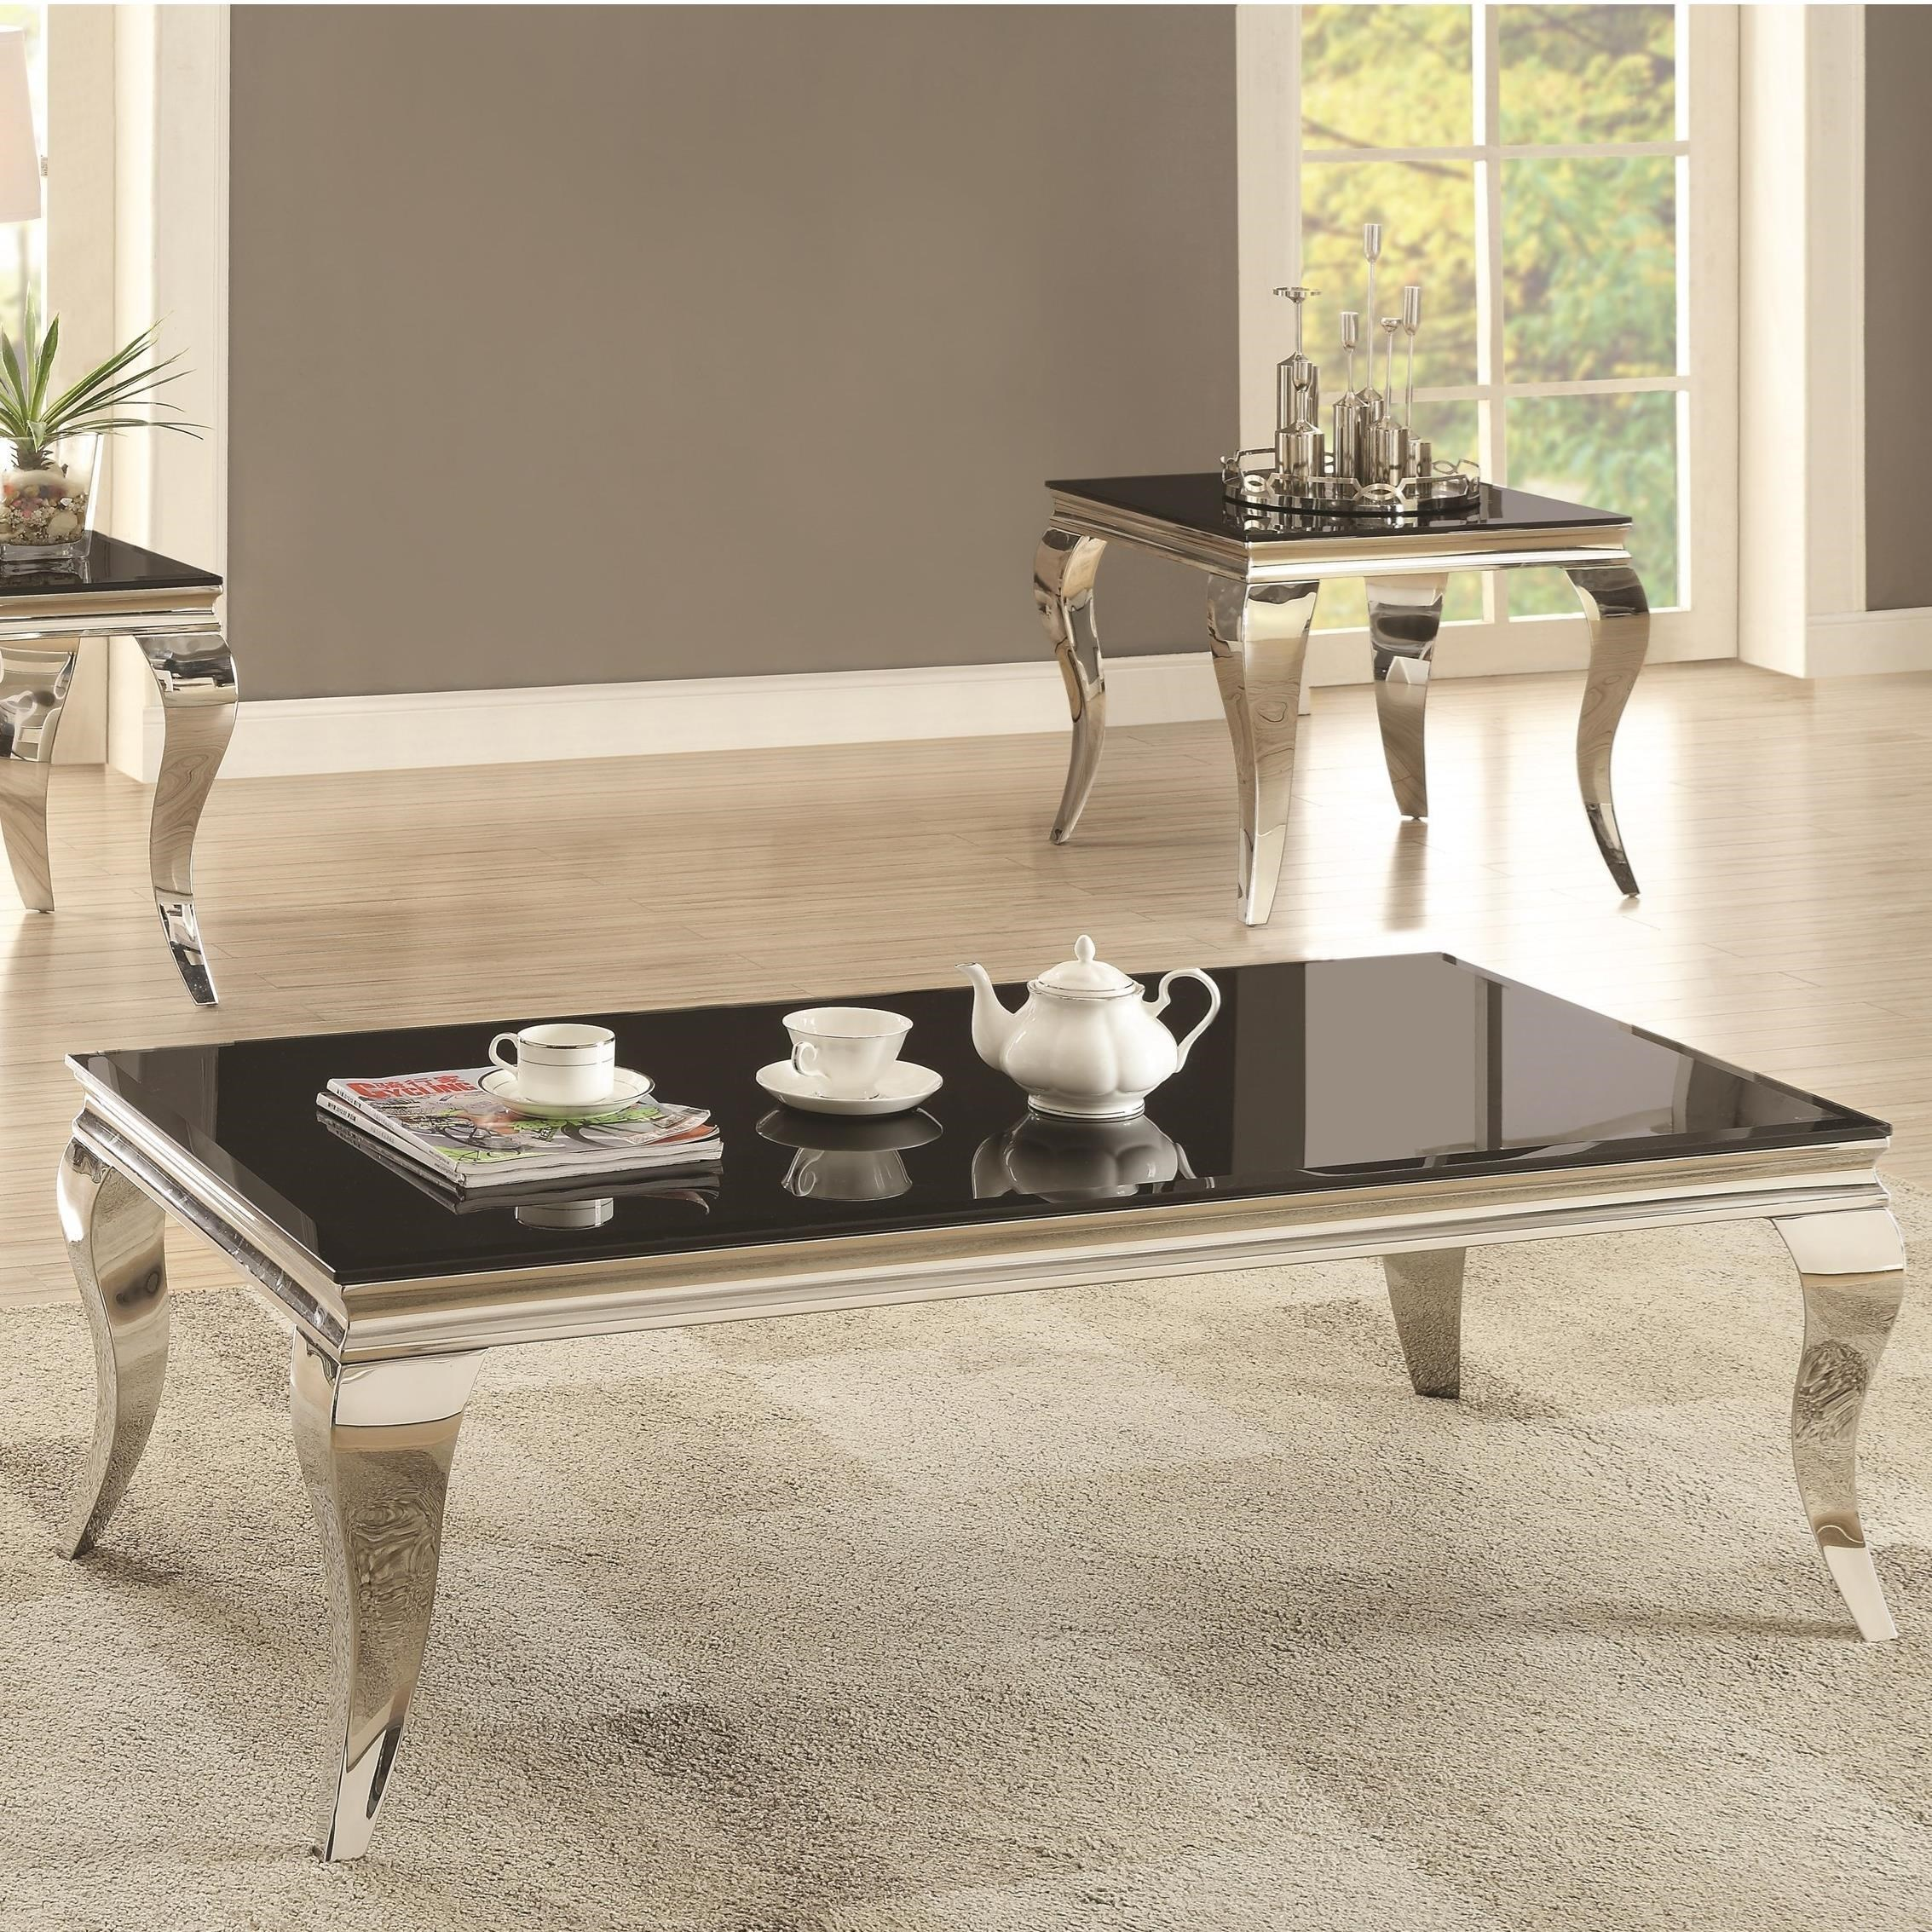 coaster 705010 glam coffee table with queen anne legs - value city